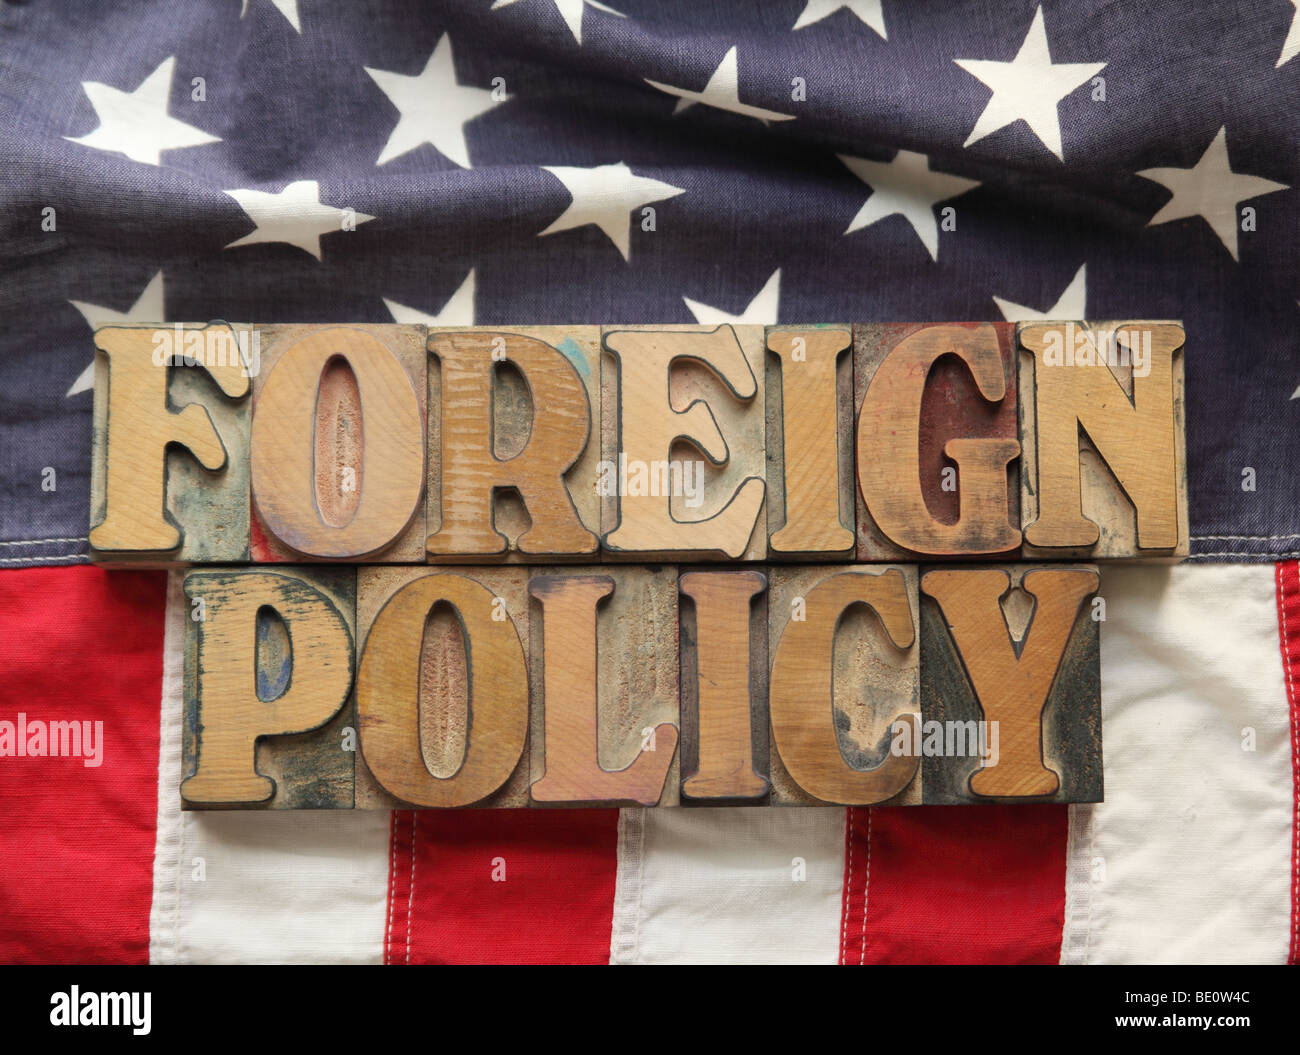 American flag with the words 'foreign policy' - Stock Image